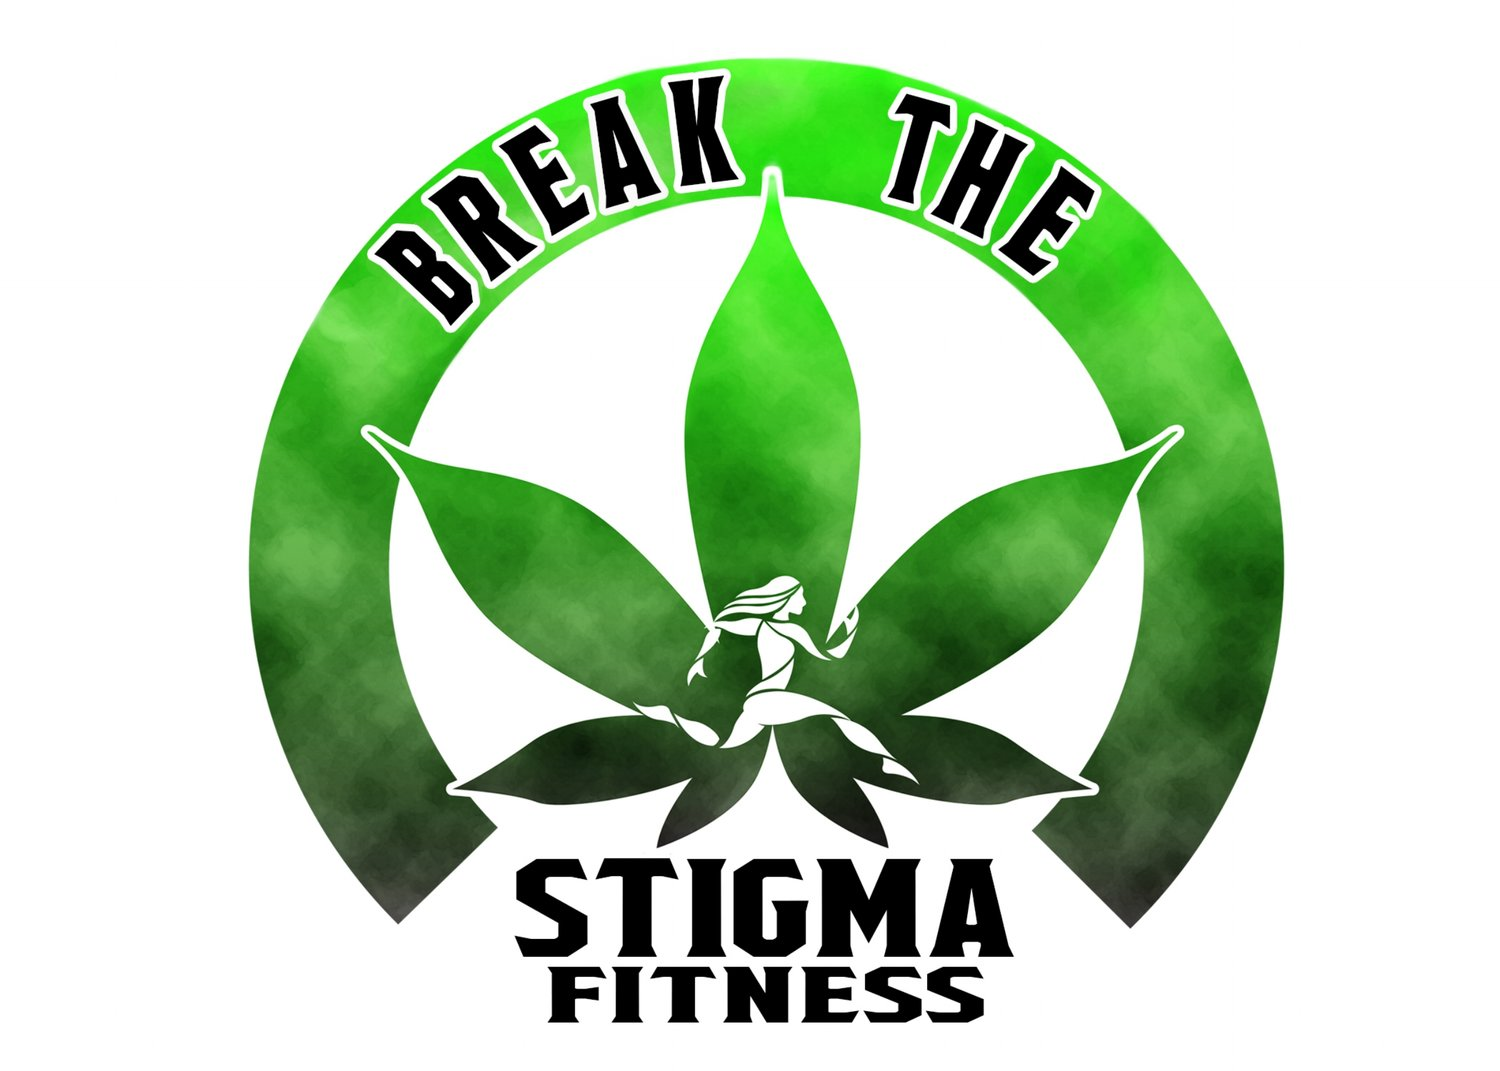 Break the Stigma Fitness